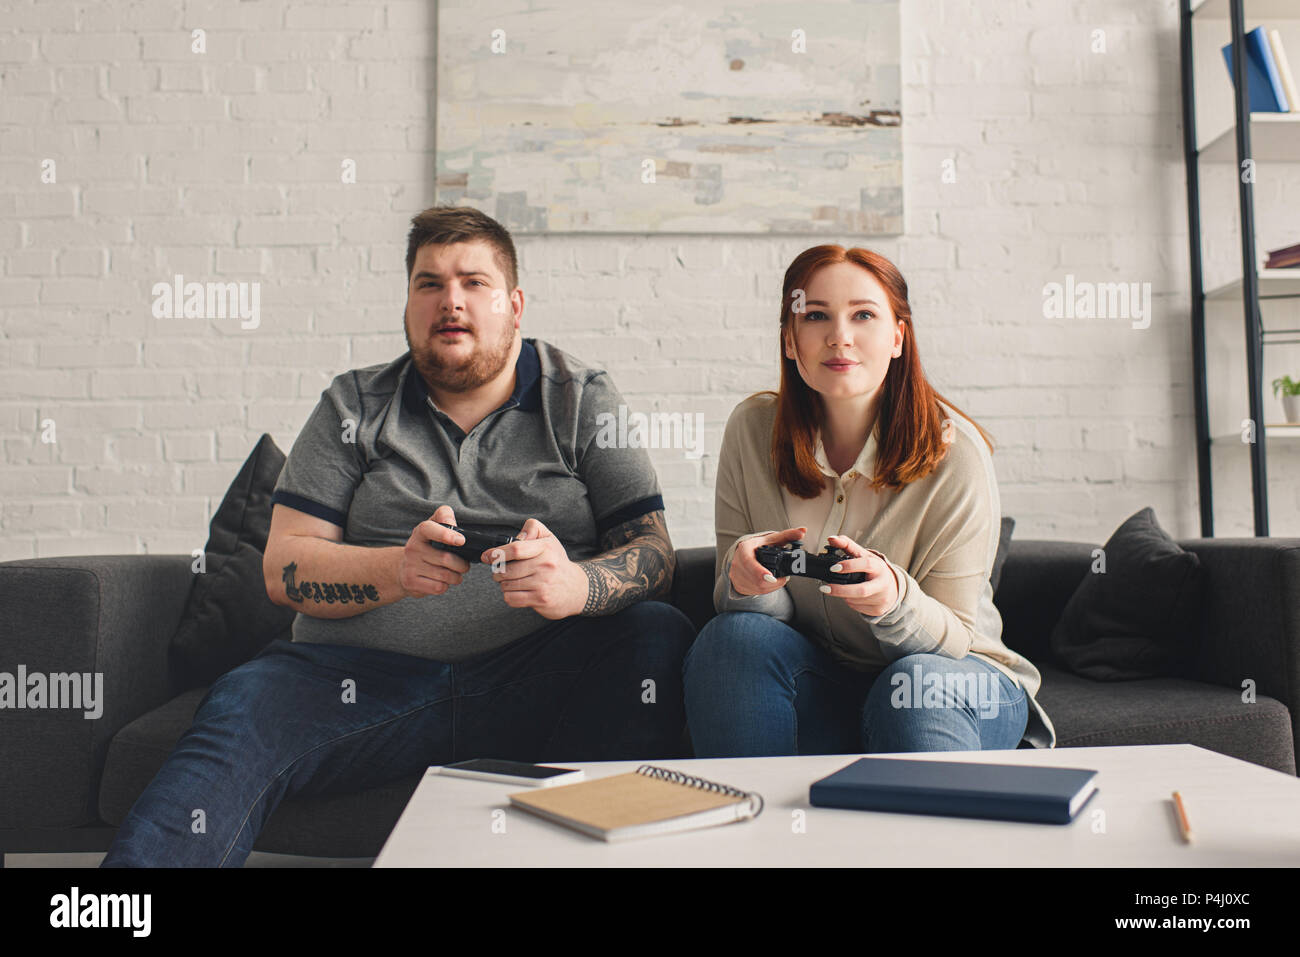 boyfriend and girlfriend playing video game at home